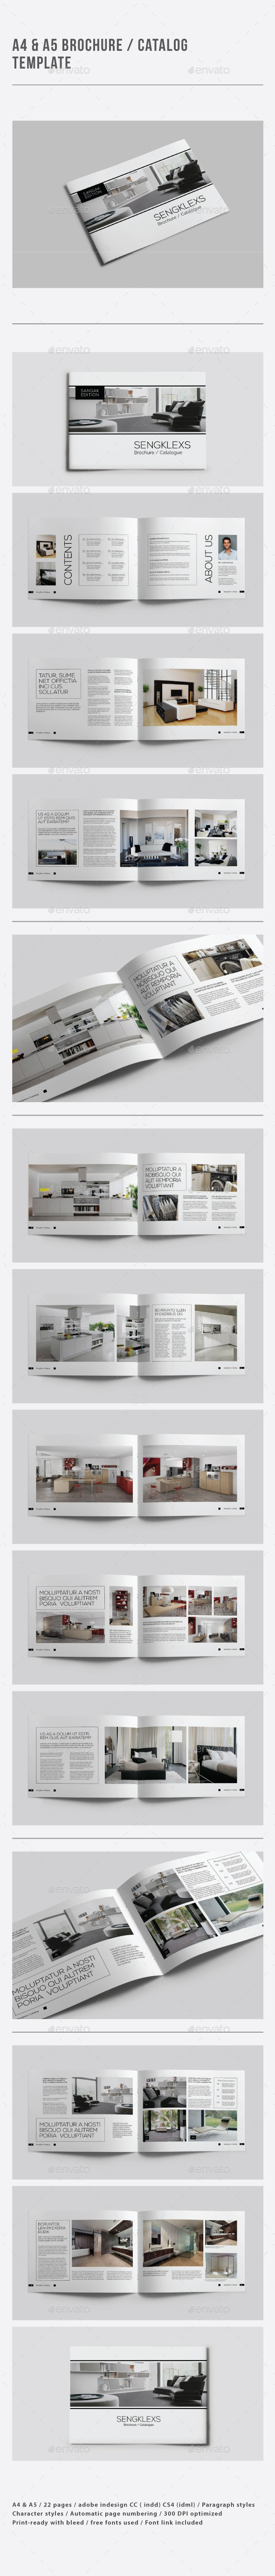 A4 & A5 Brochure / Catalogue Template - Catalogs Brochures